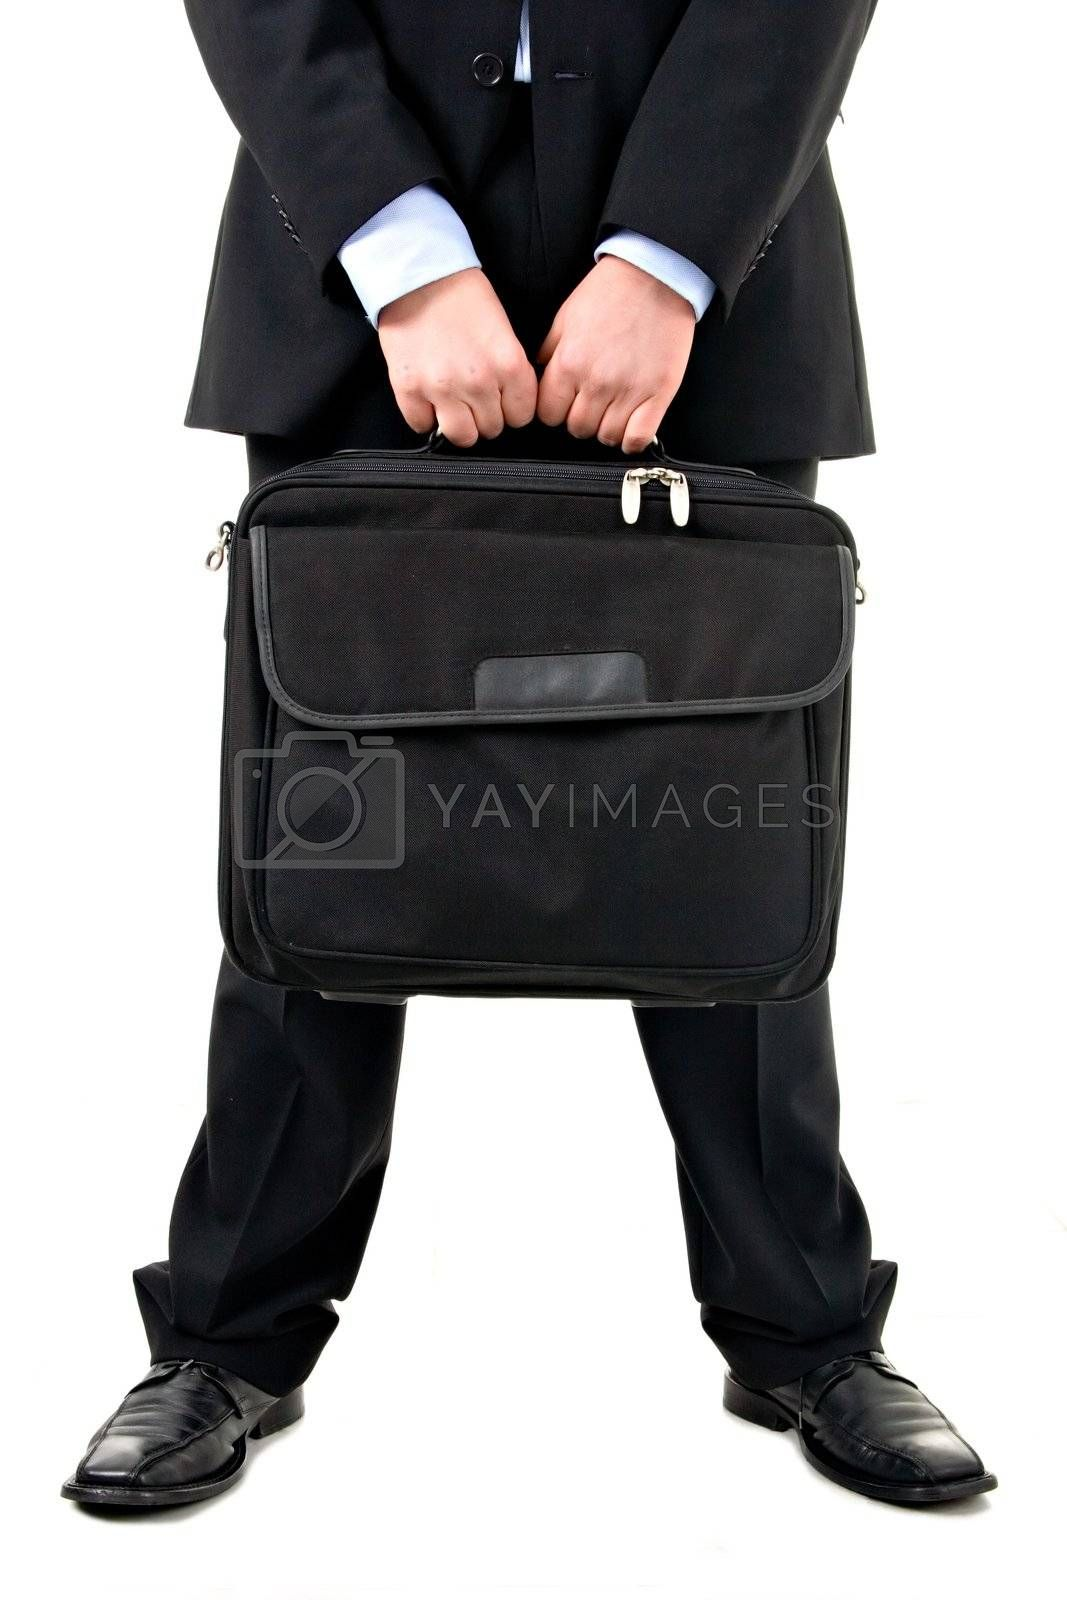 Man holding computer suitcase.